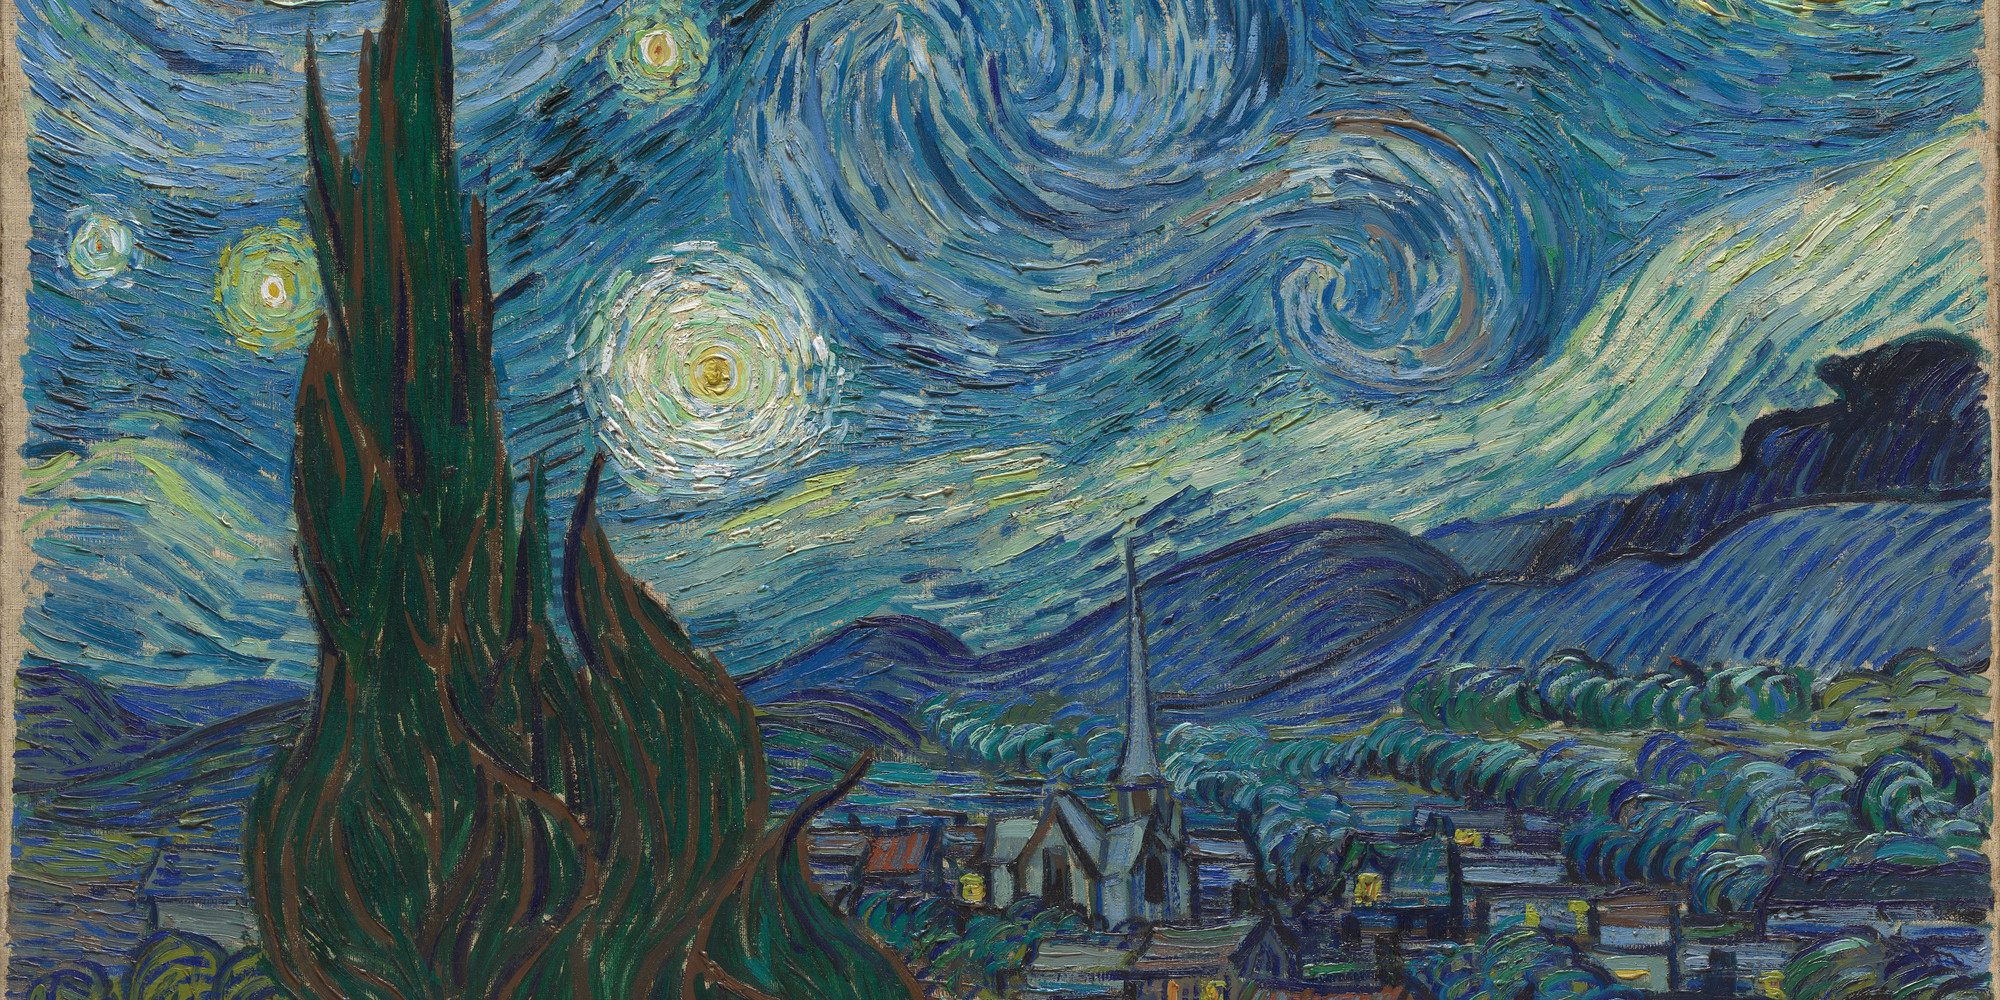 Vincent van Gogh. The Starry Night, 1889.